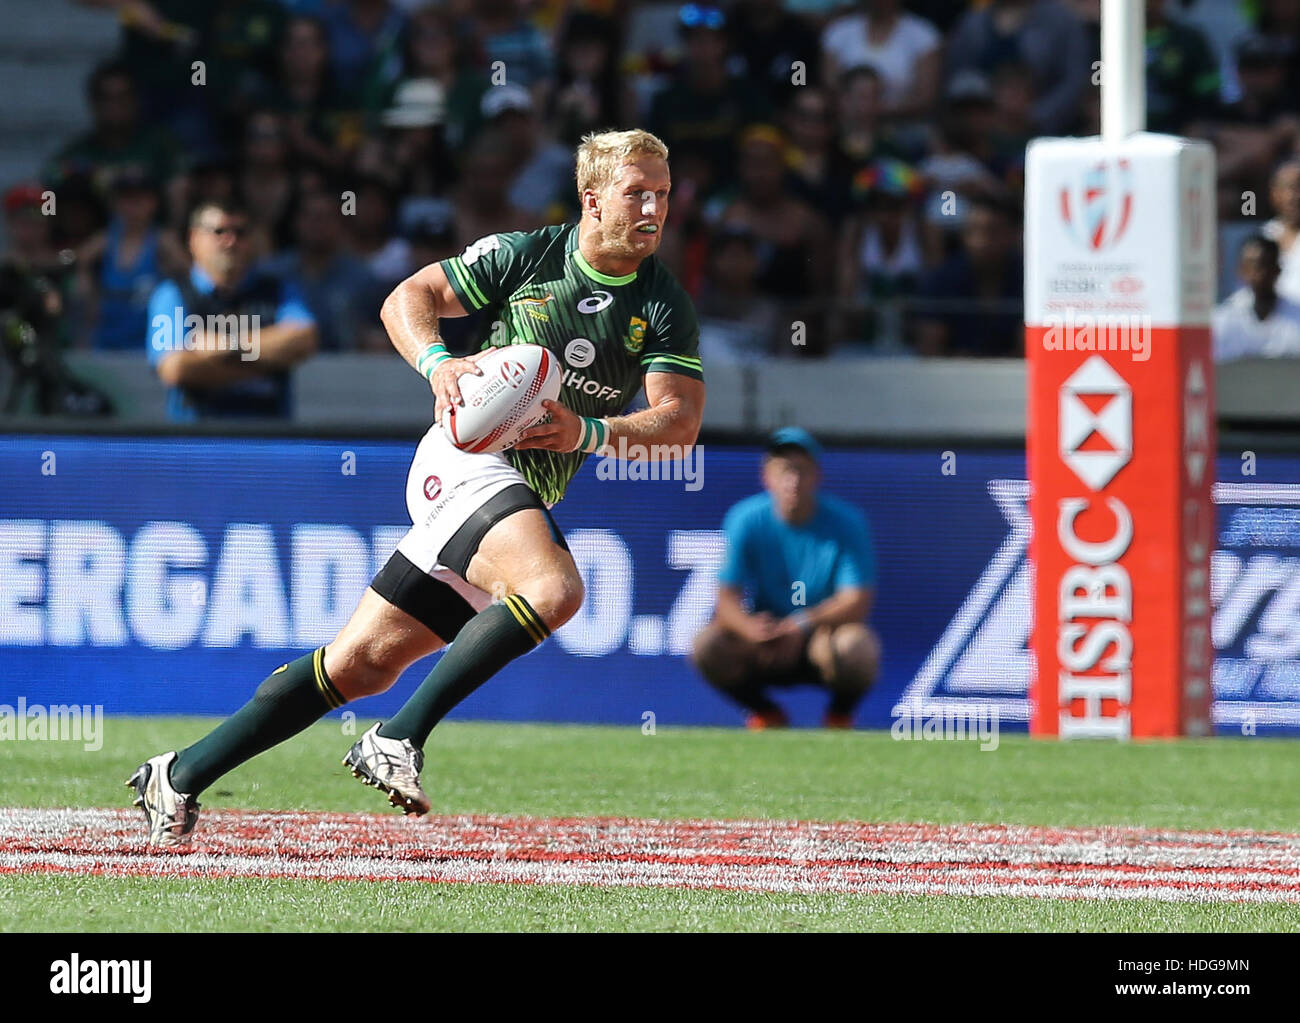 L'AS Rugby Springbok Sevens joueurs en action pendant le tournoi de rugby à VII de la HSBC 2016 au Cape Photo Stock